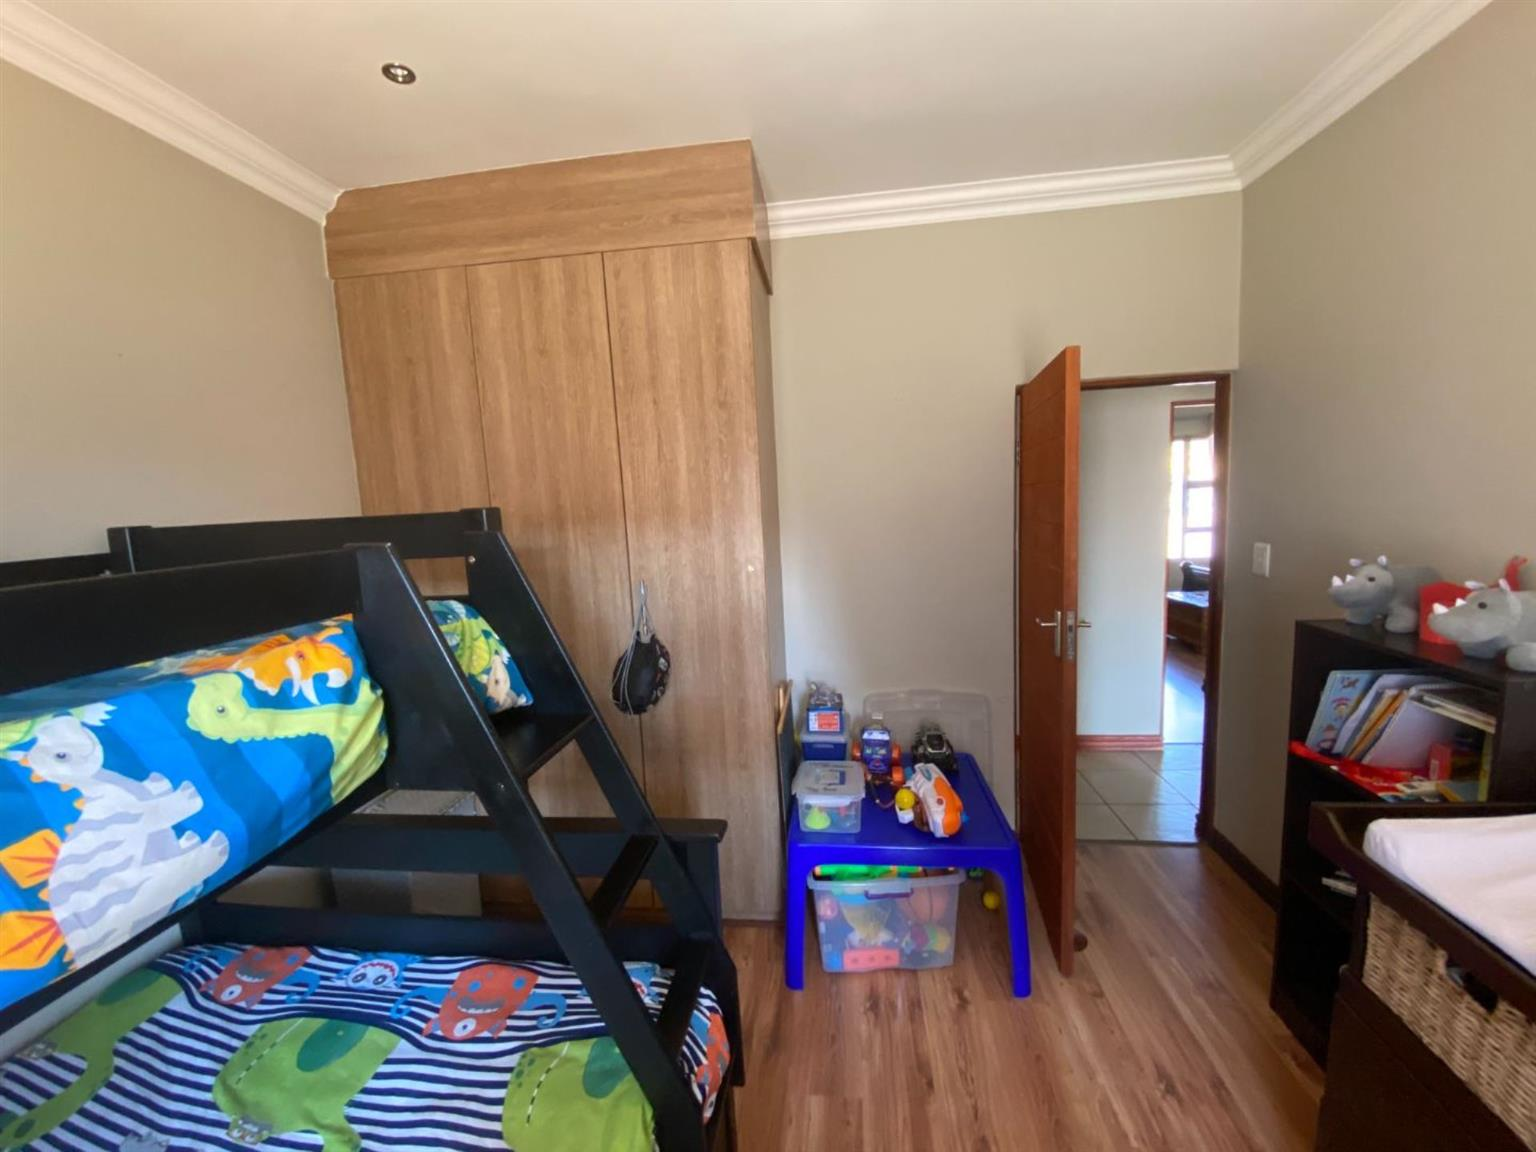 House For Sale in THATCHFIELD